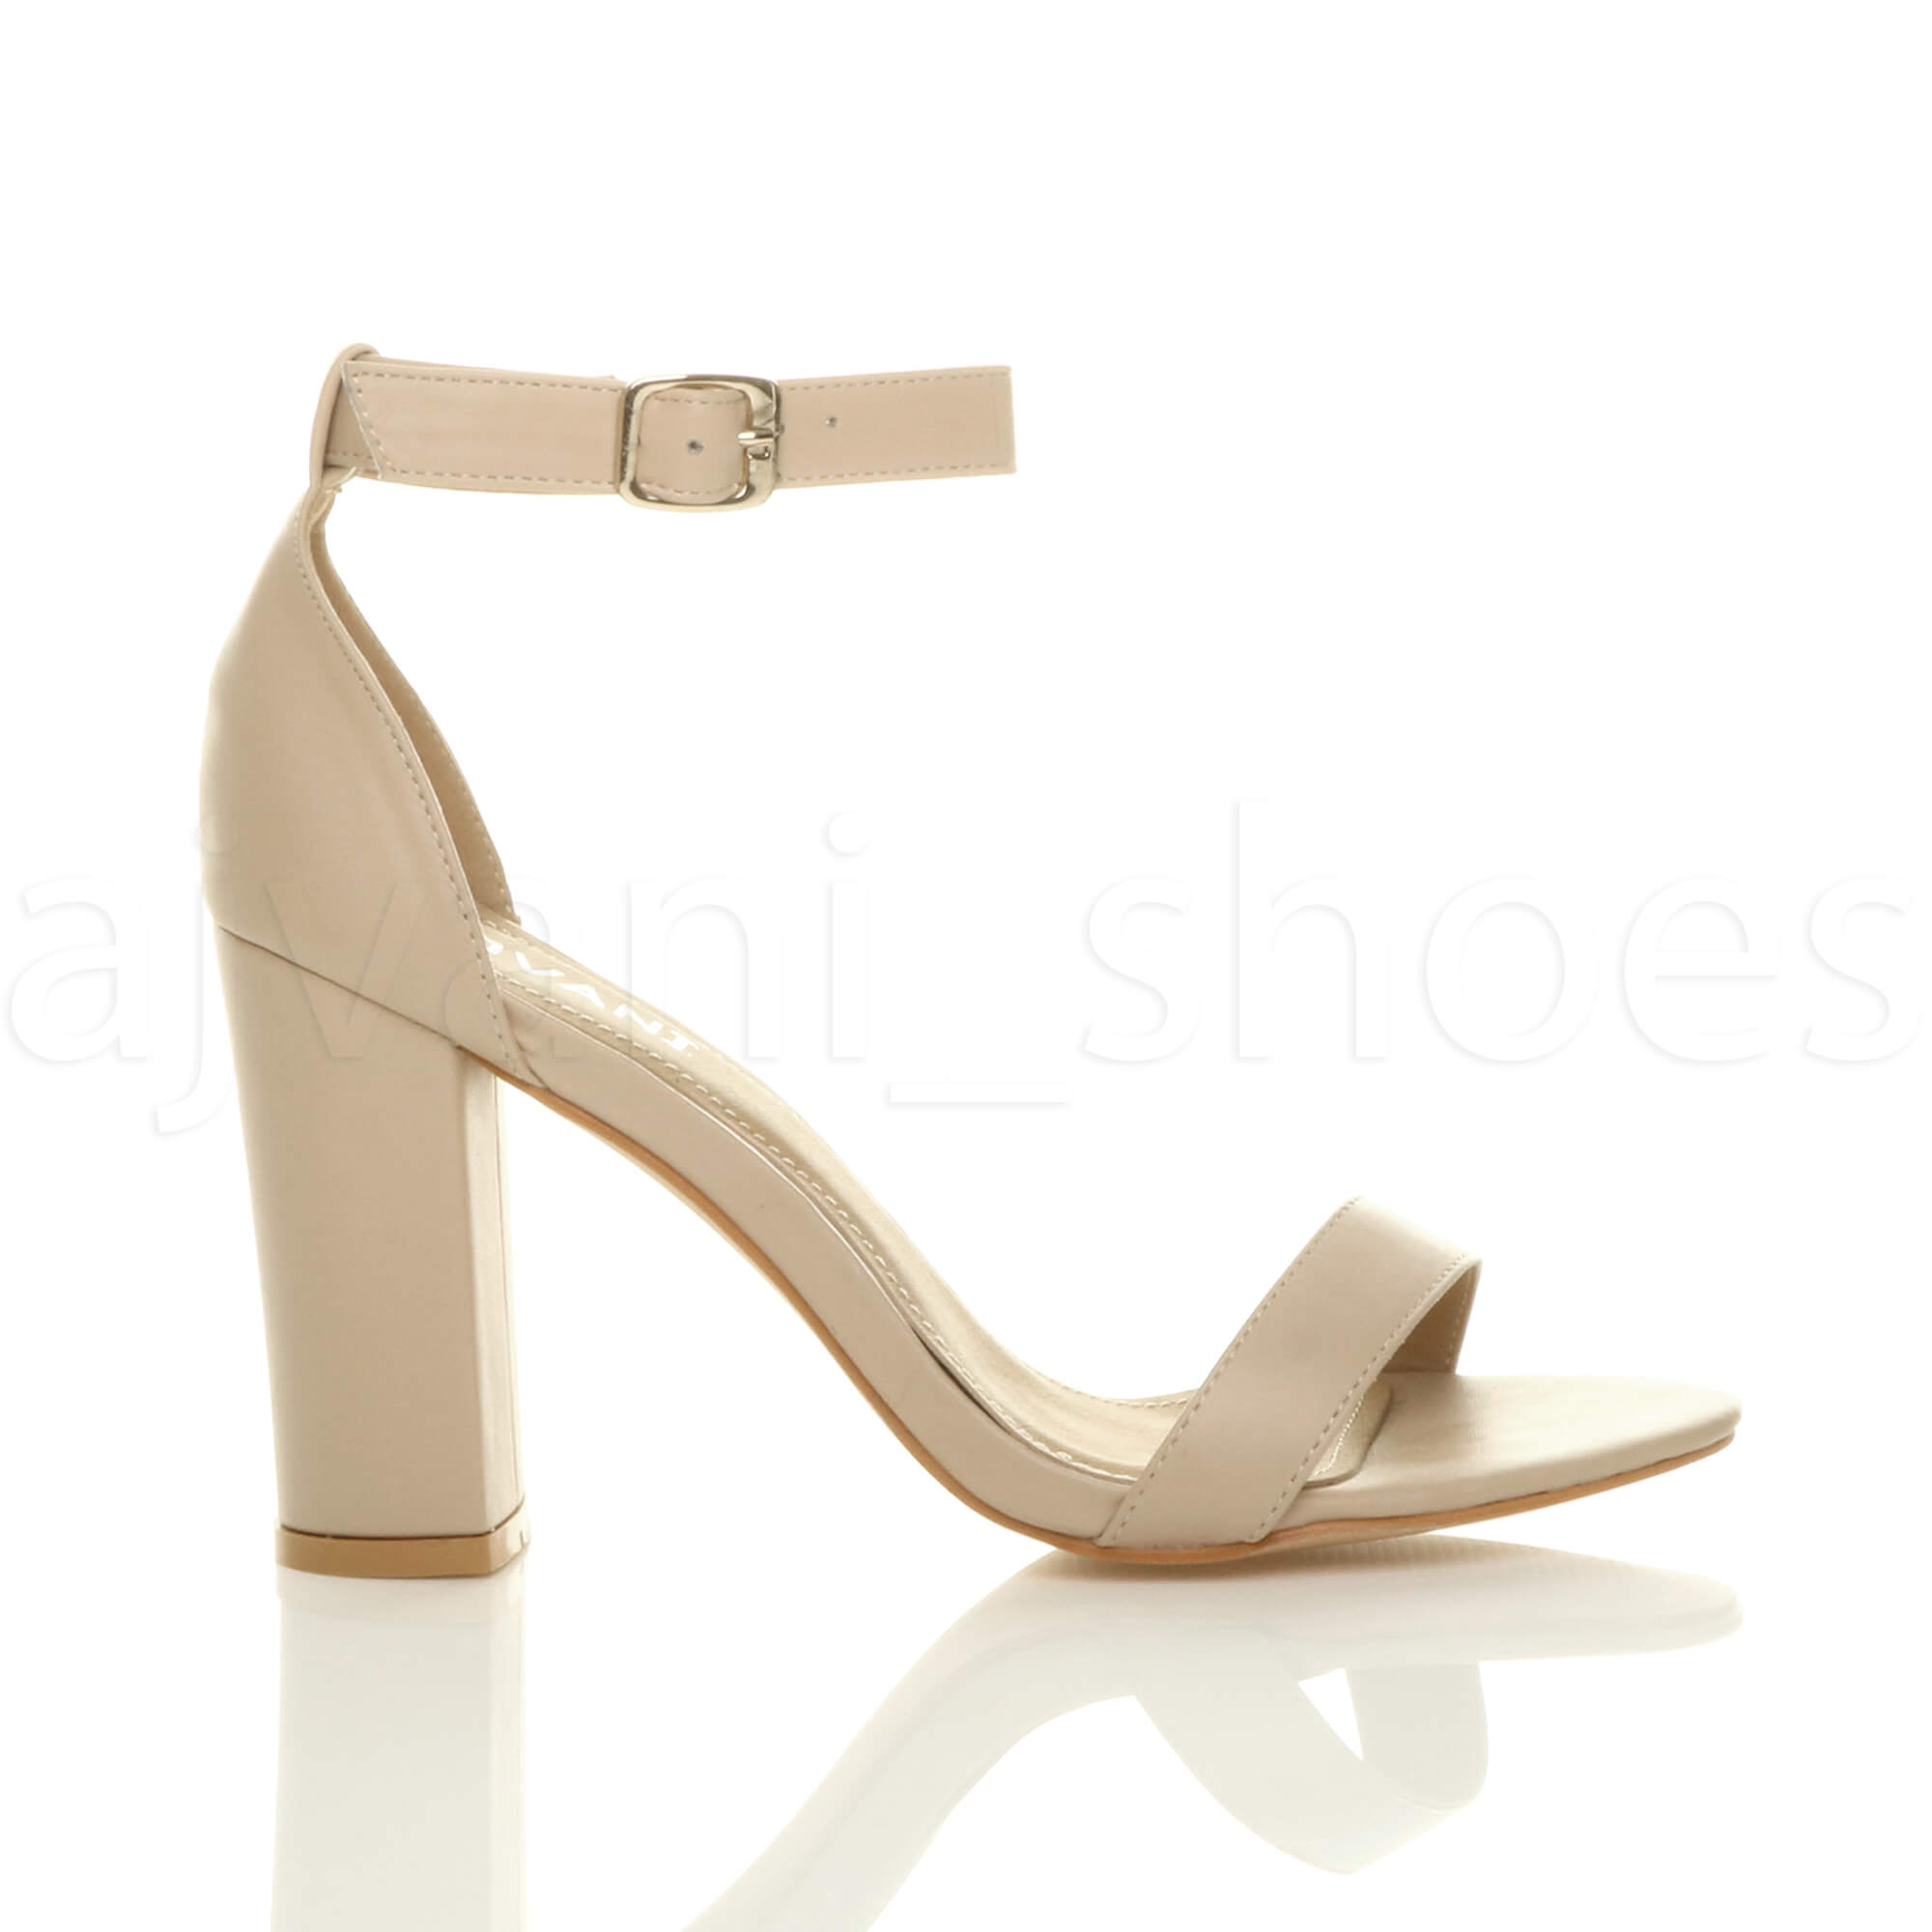 WOMENS-LADIES-BLOCK-HIGH-HEEL-ANKLE-STRAP-PEEP-TOE-STRAPPY-SANDALS-SHOES-SIZE thumbnail 96